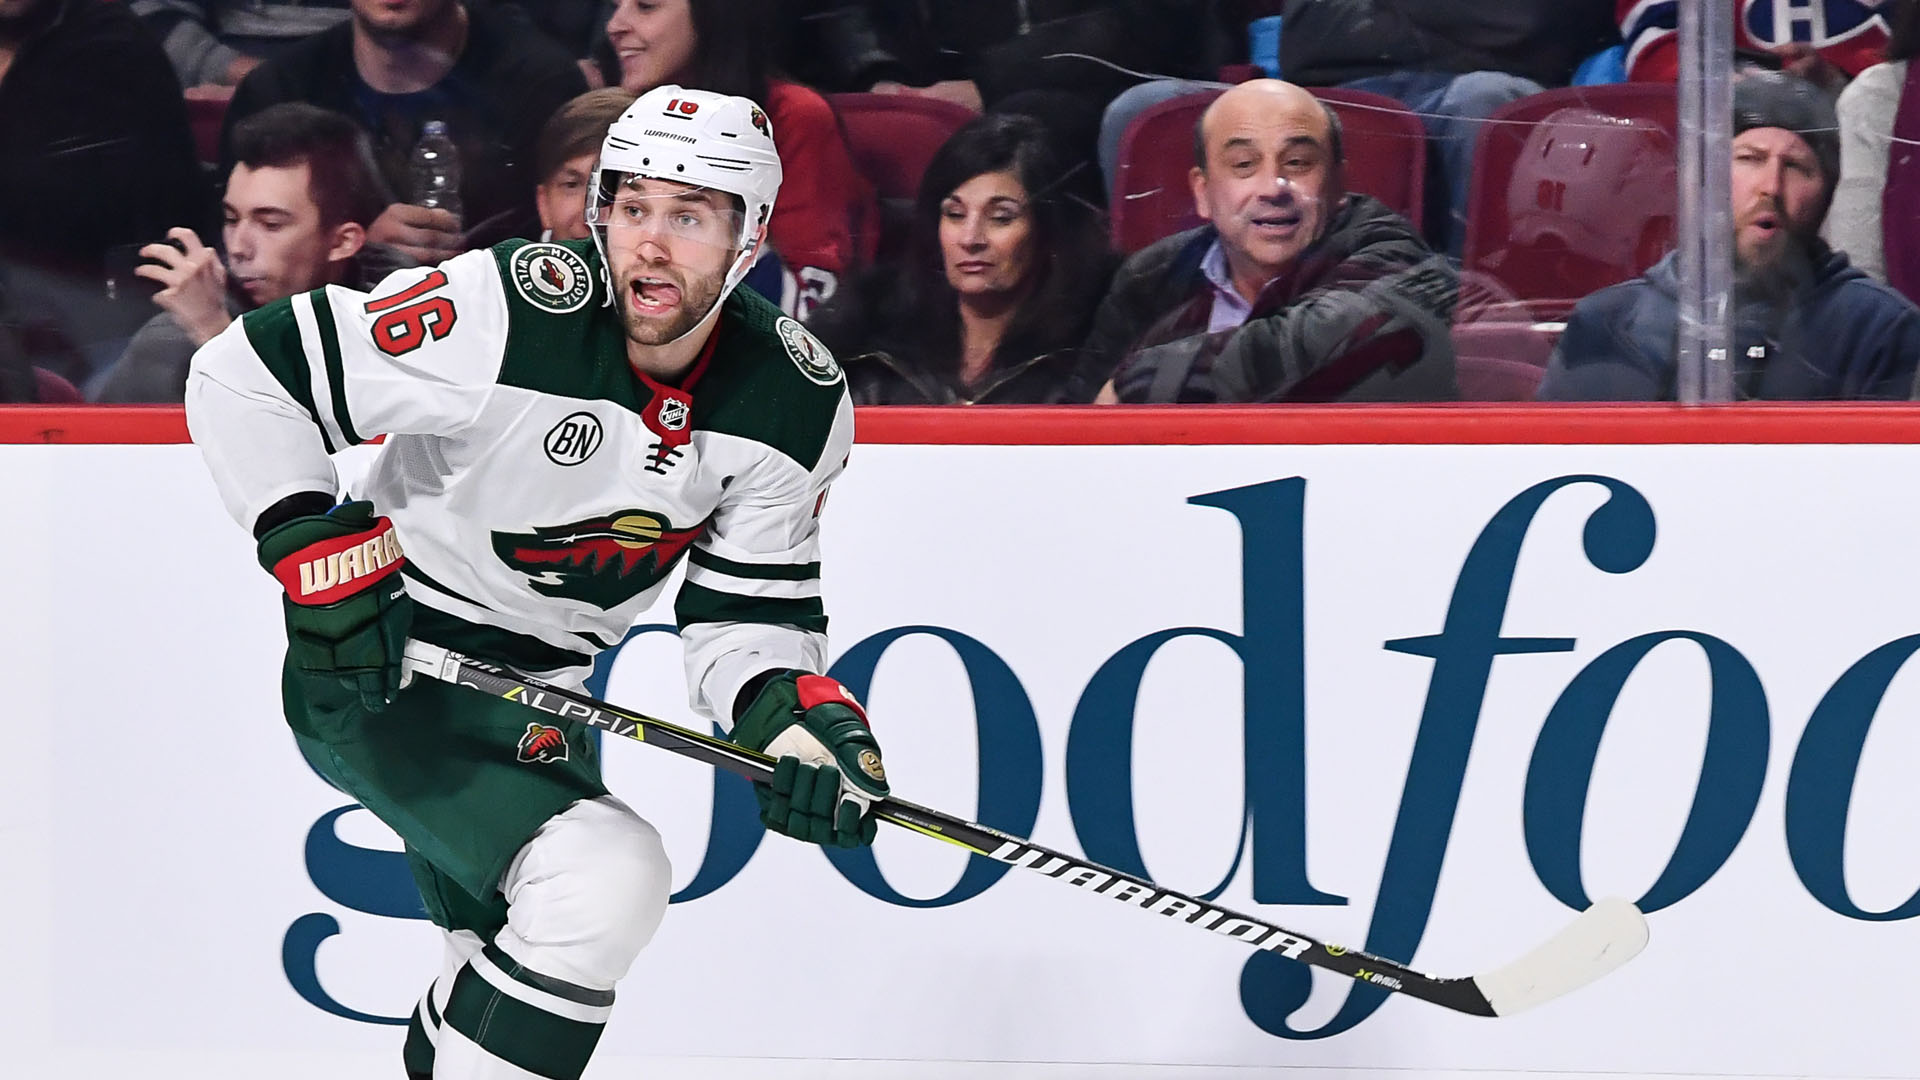 Sabres After Wild S Jason Zucker Report Says Sporting News